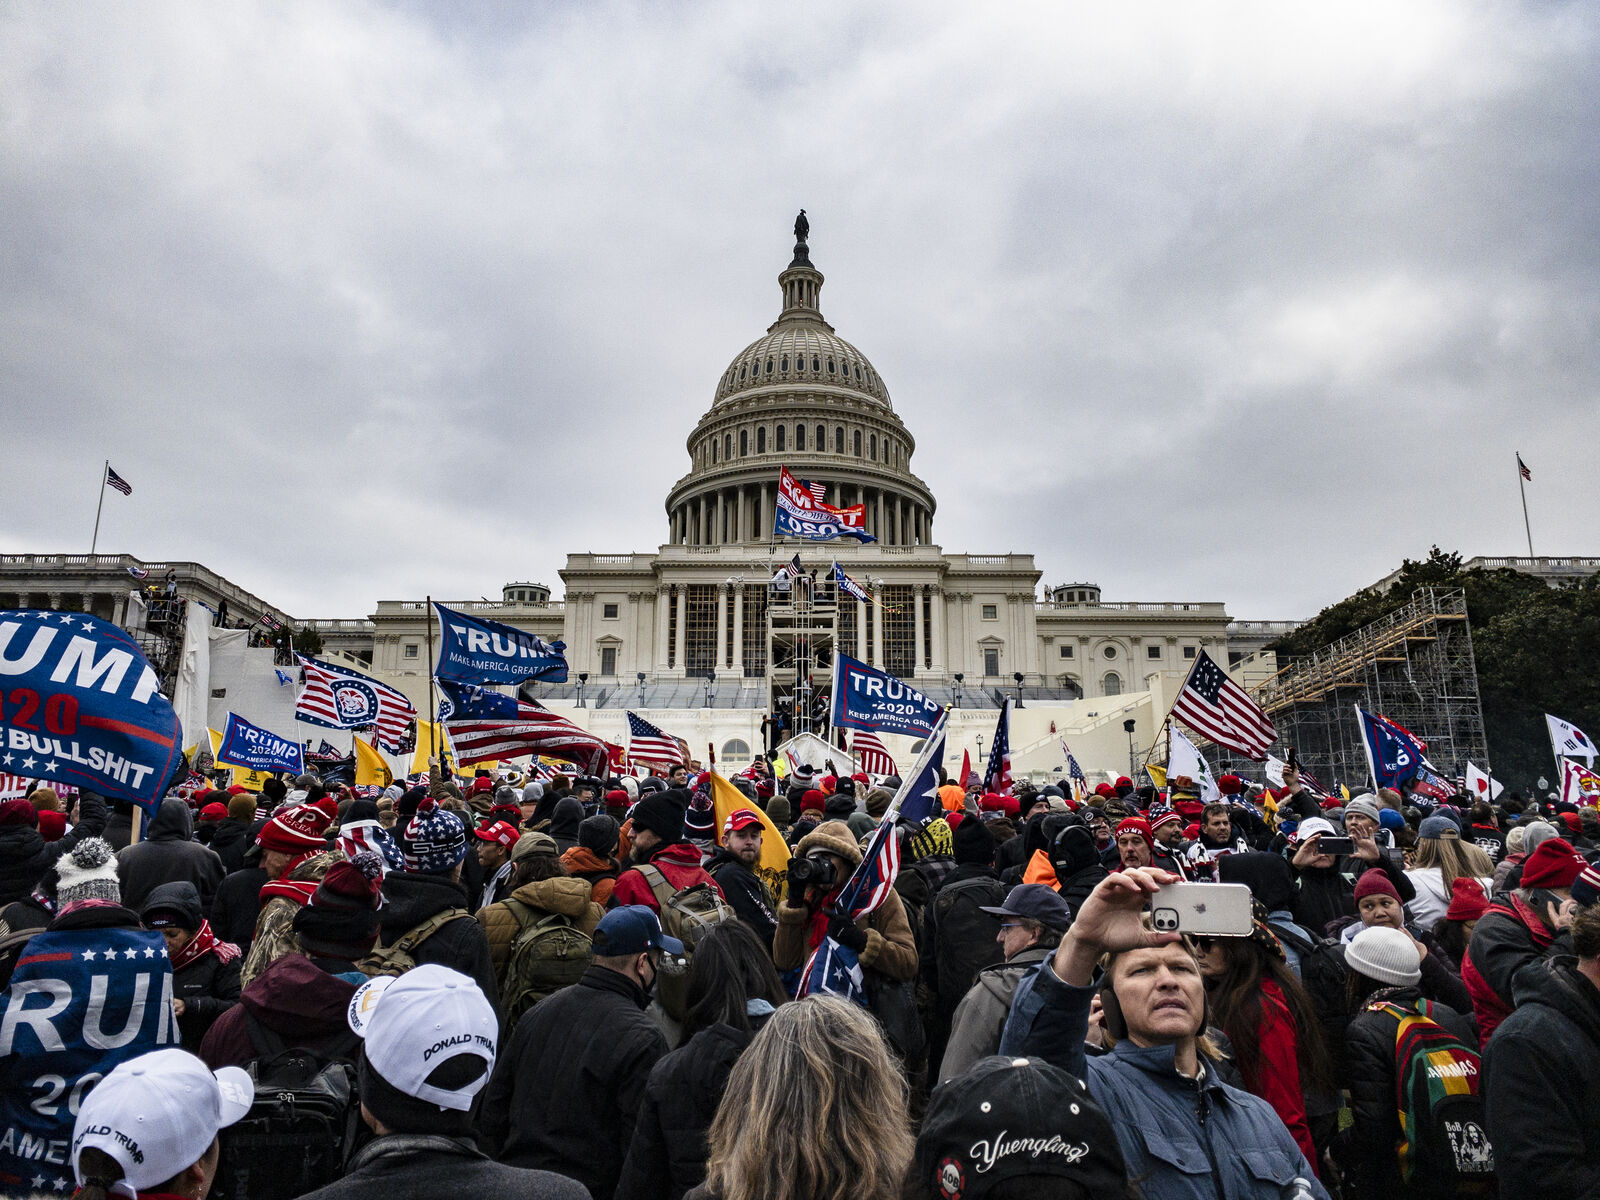 Pro-Trump supporters storm the U.S. Capitol following a rally with President Donald Trump on January 6, 2021 in Washington. (Photo by Samuel Corum/Getty Images)